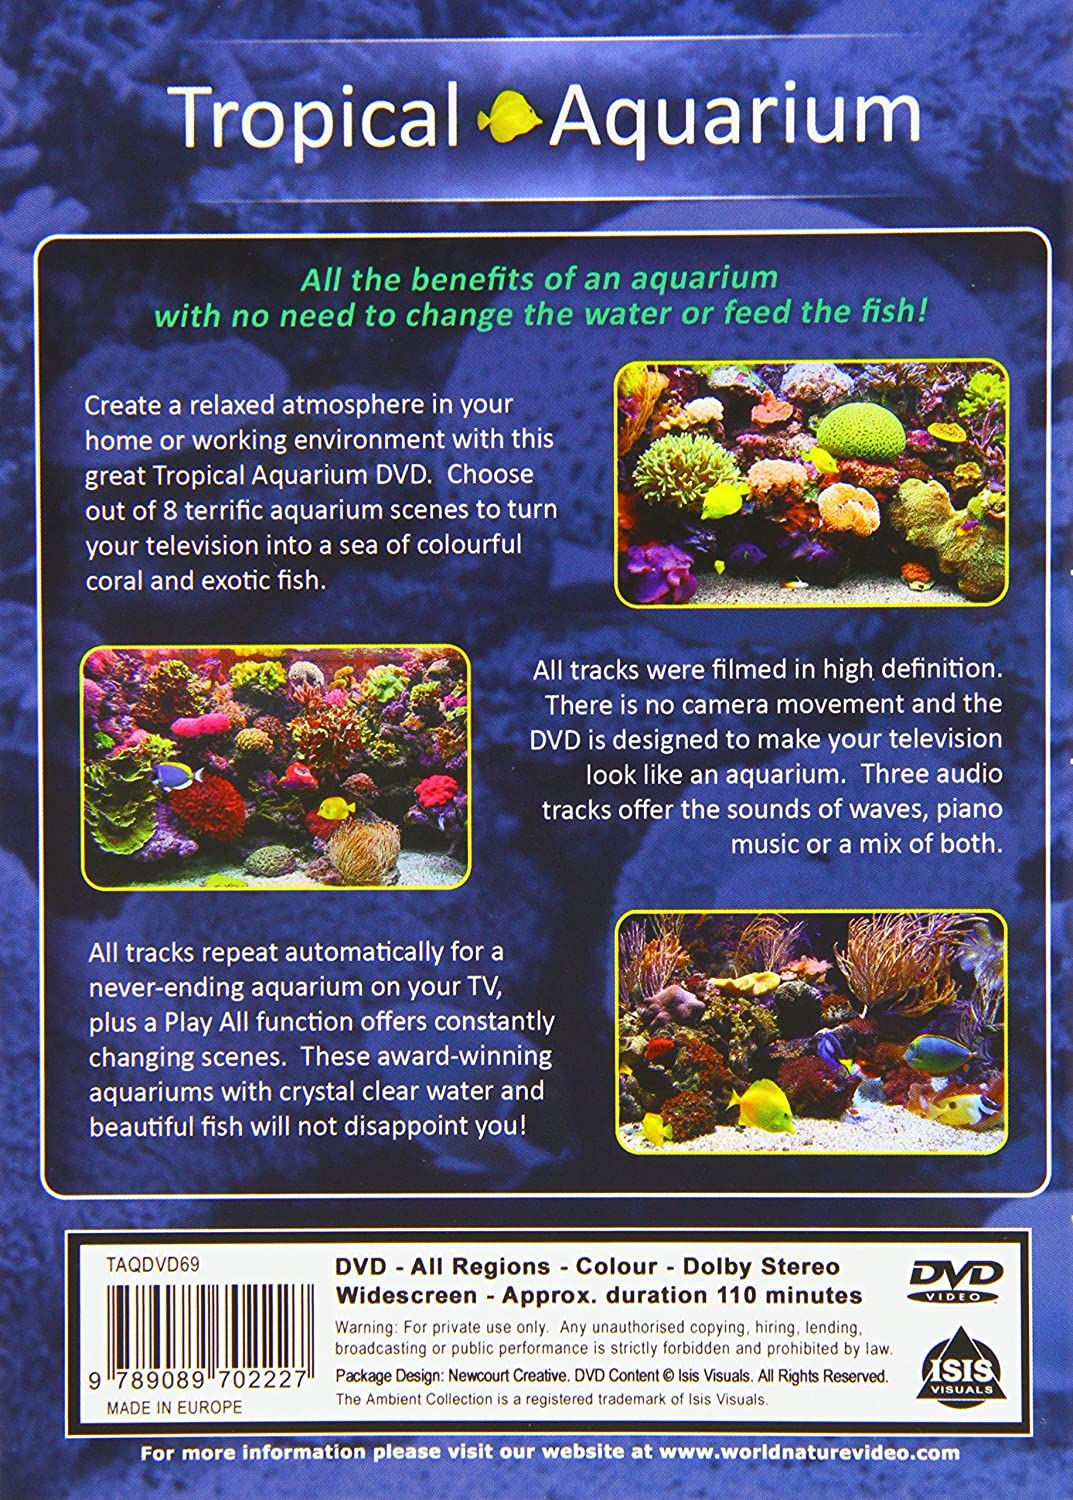 Picking fish for your aquarium - Aquarium Dvd Tropical Aquarium 2 Hours Of Award Wining Fish Tanks Amazon Co Uk The Ambient Collection Tropical Fishes And Marine Sea Life And Coral